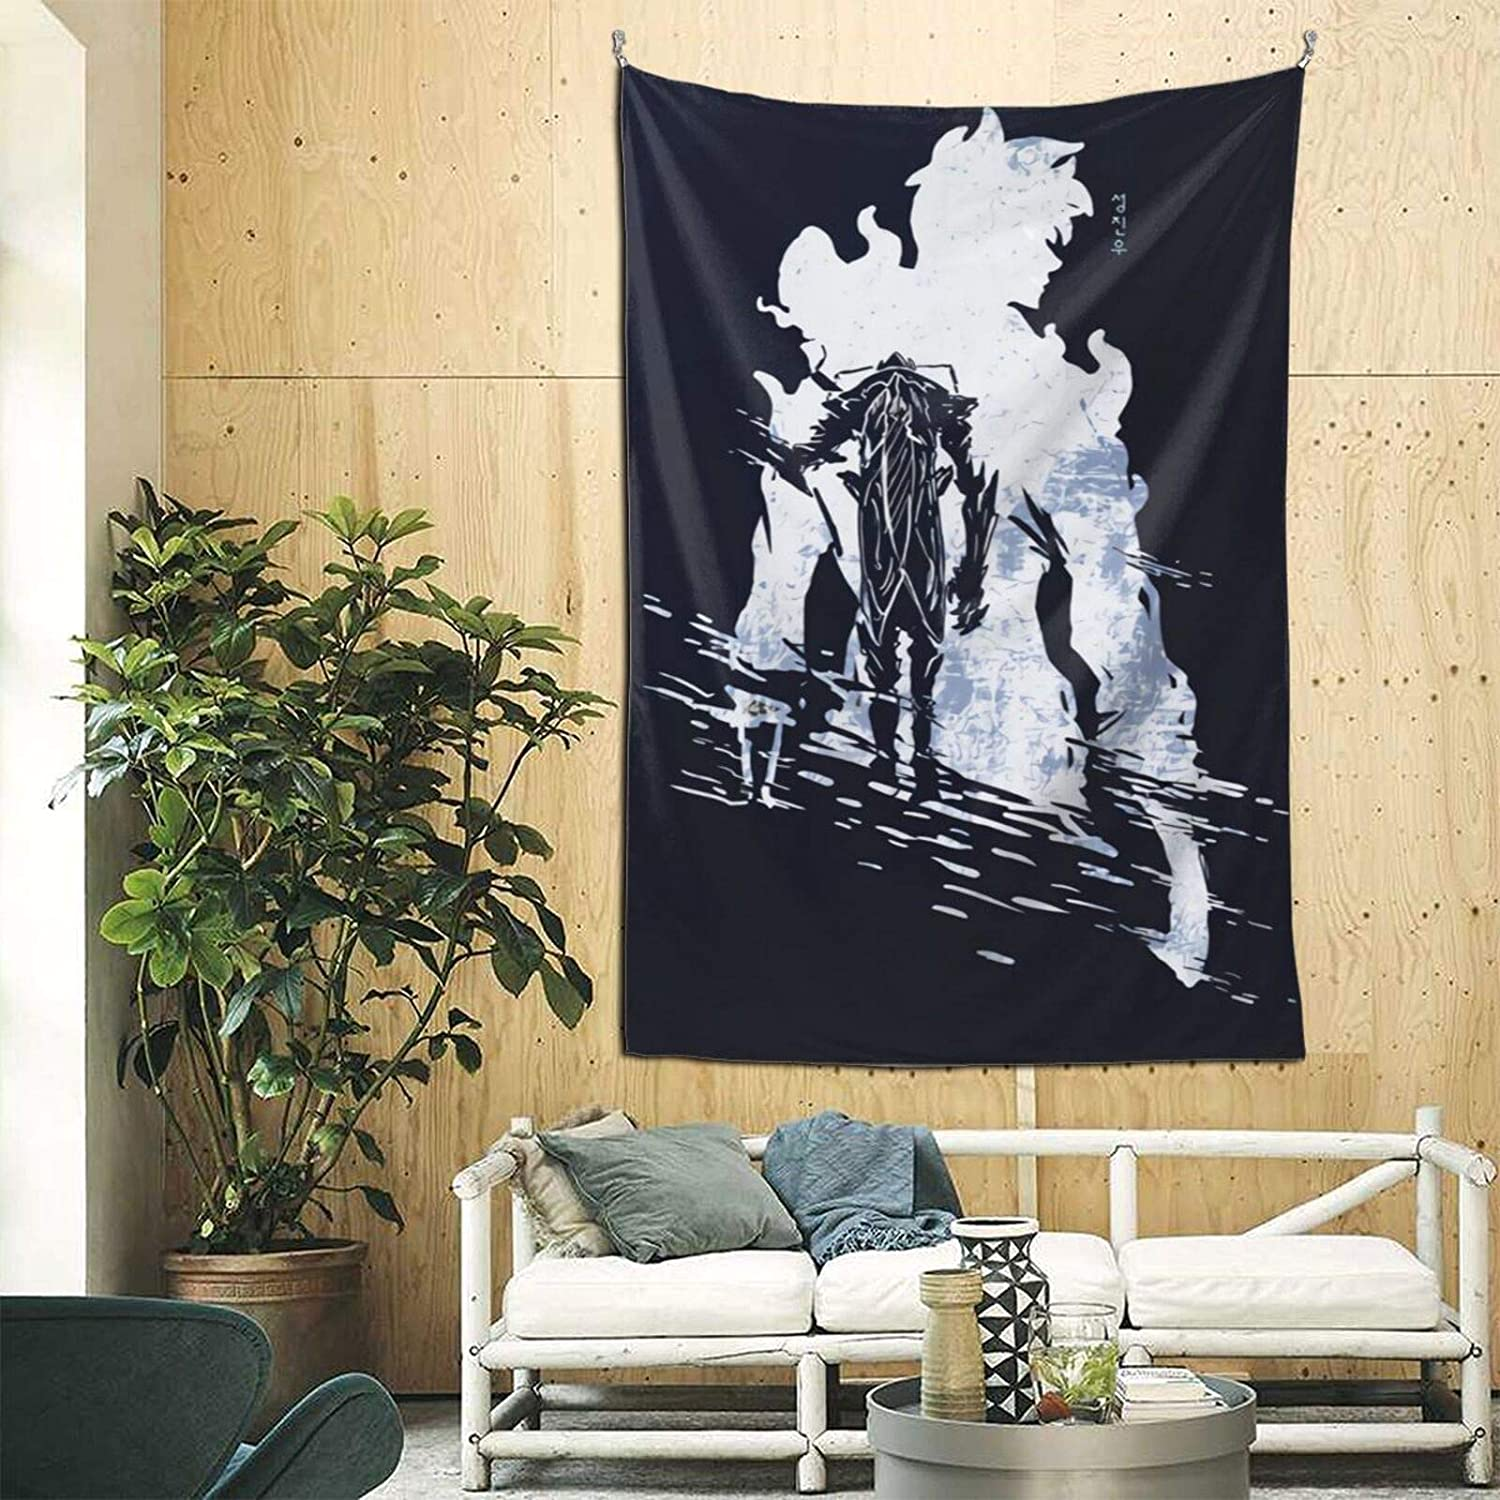 jkhhy Sung Jin-woo Arrival Text Solo Leveling Home Art Deco Tapestry Bedroom Living Room Tapestry Outdoor Picnic Blanket Beach Blanket 60 in X 90 in